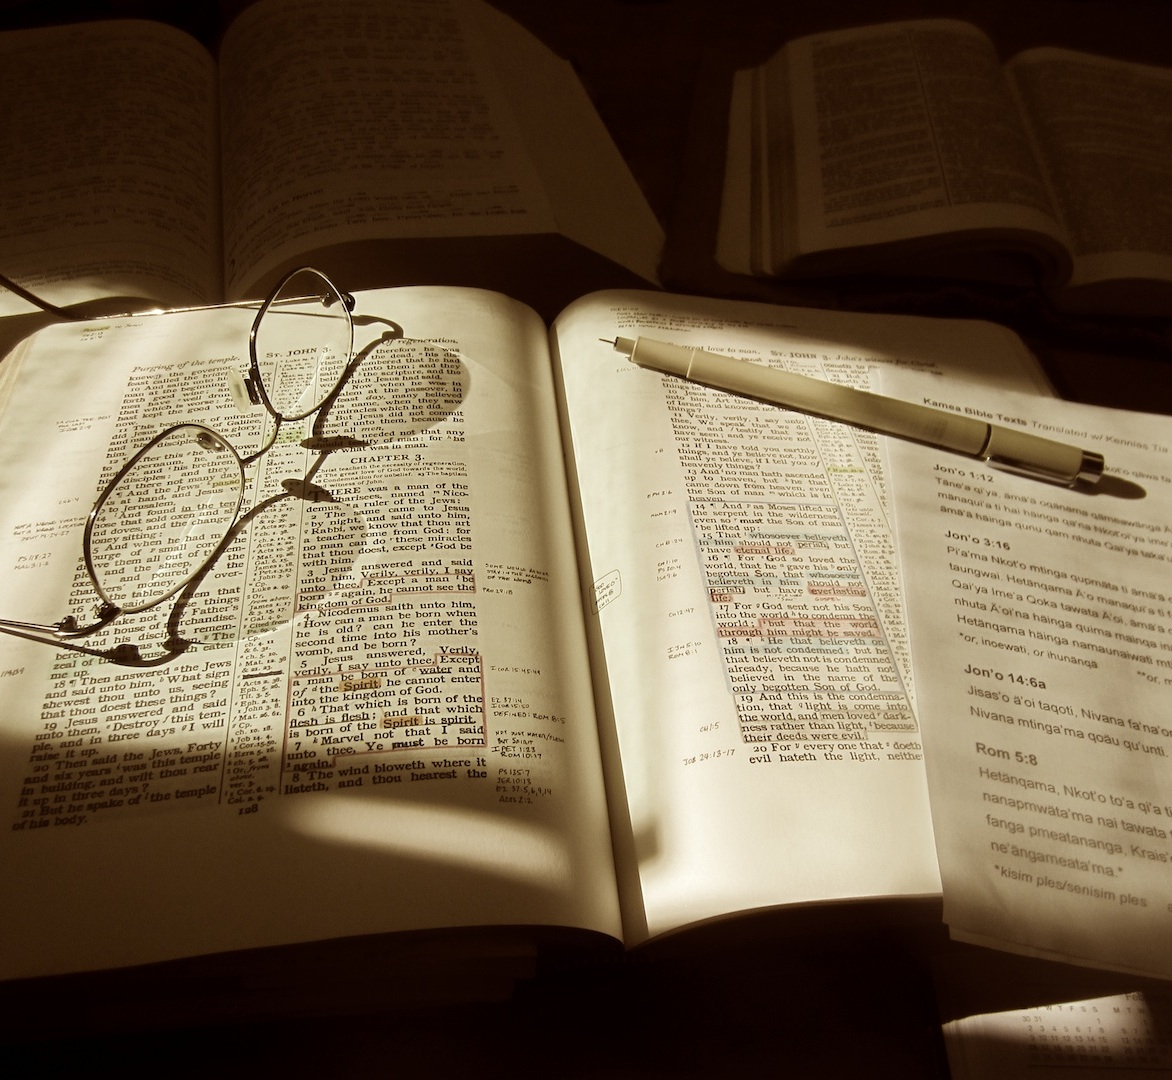 Daily study of the Word keeps us reminded of why we are here: The glory of God and the salvation of men. (Copyright, JMA, 2010)